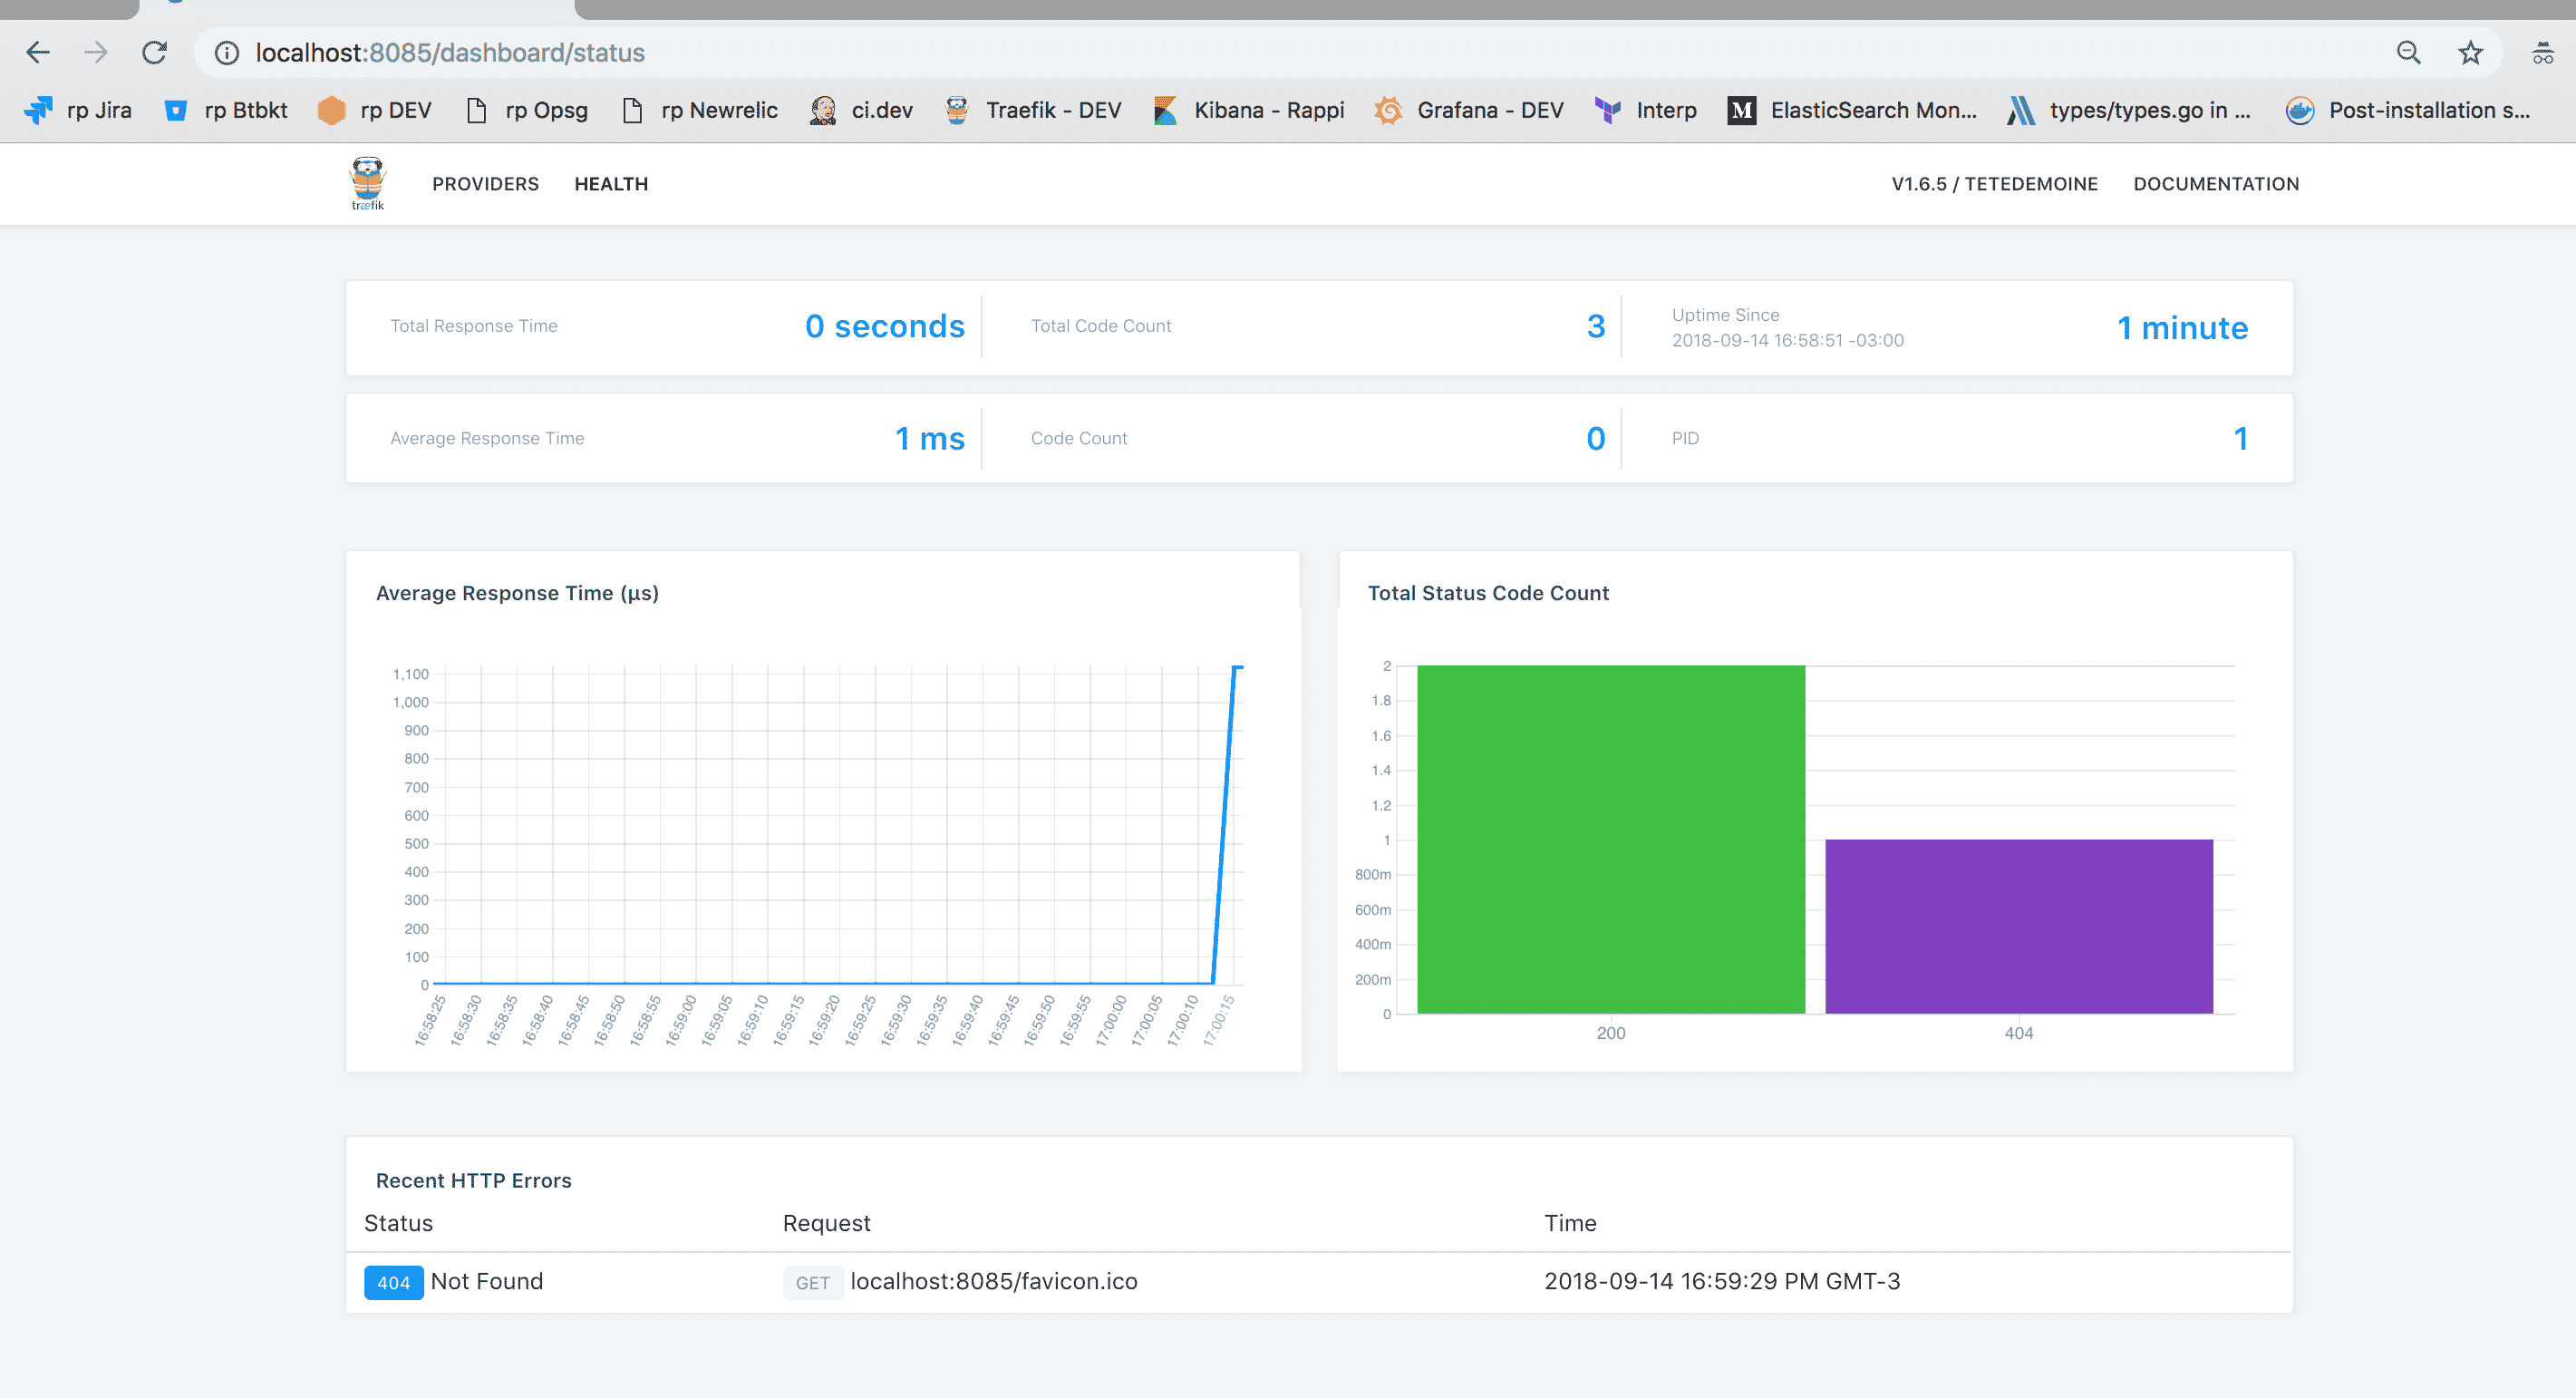 Traefik - Prometheus - Grafana - Apps - Metrics | Docker